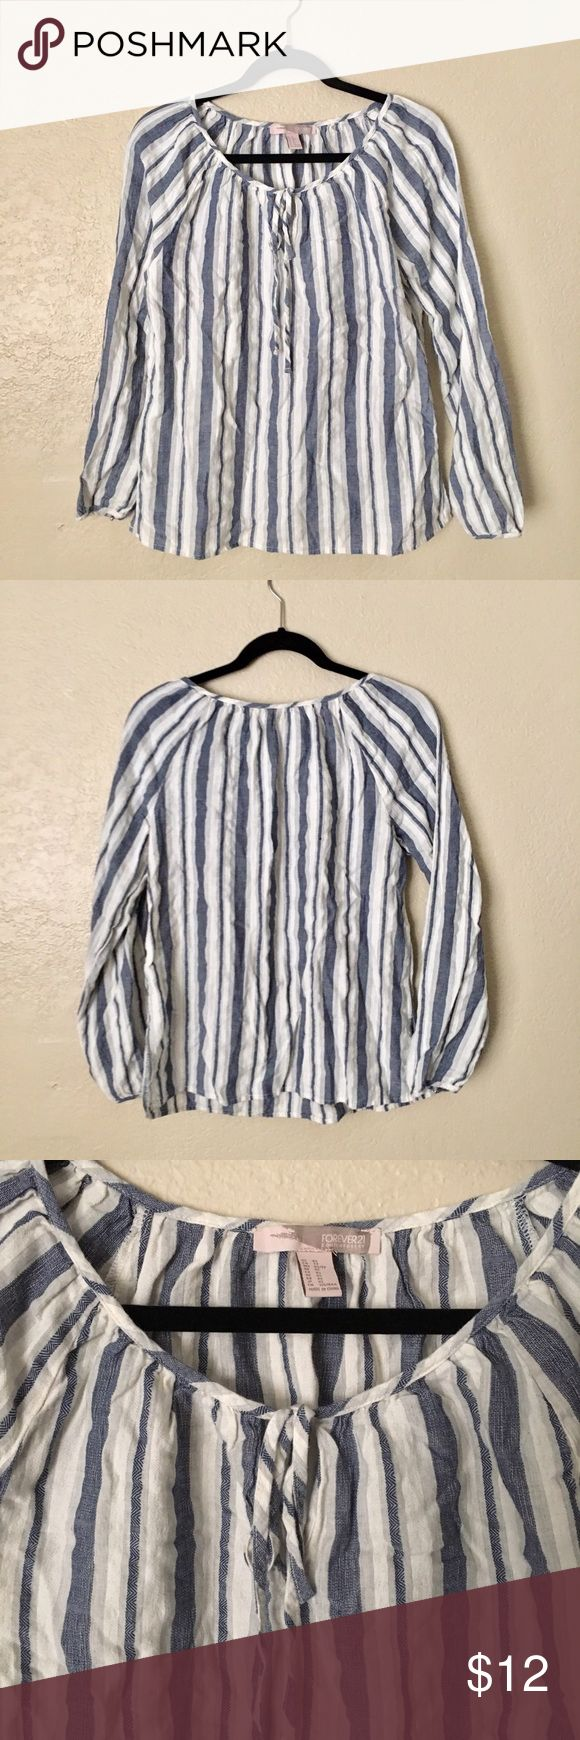 NEW Forever21 blue White Peasant Blouse New Blouse with tie key hole neck. Button hem sleeve. Forever 21 Tops Tees - Long Sleeve